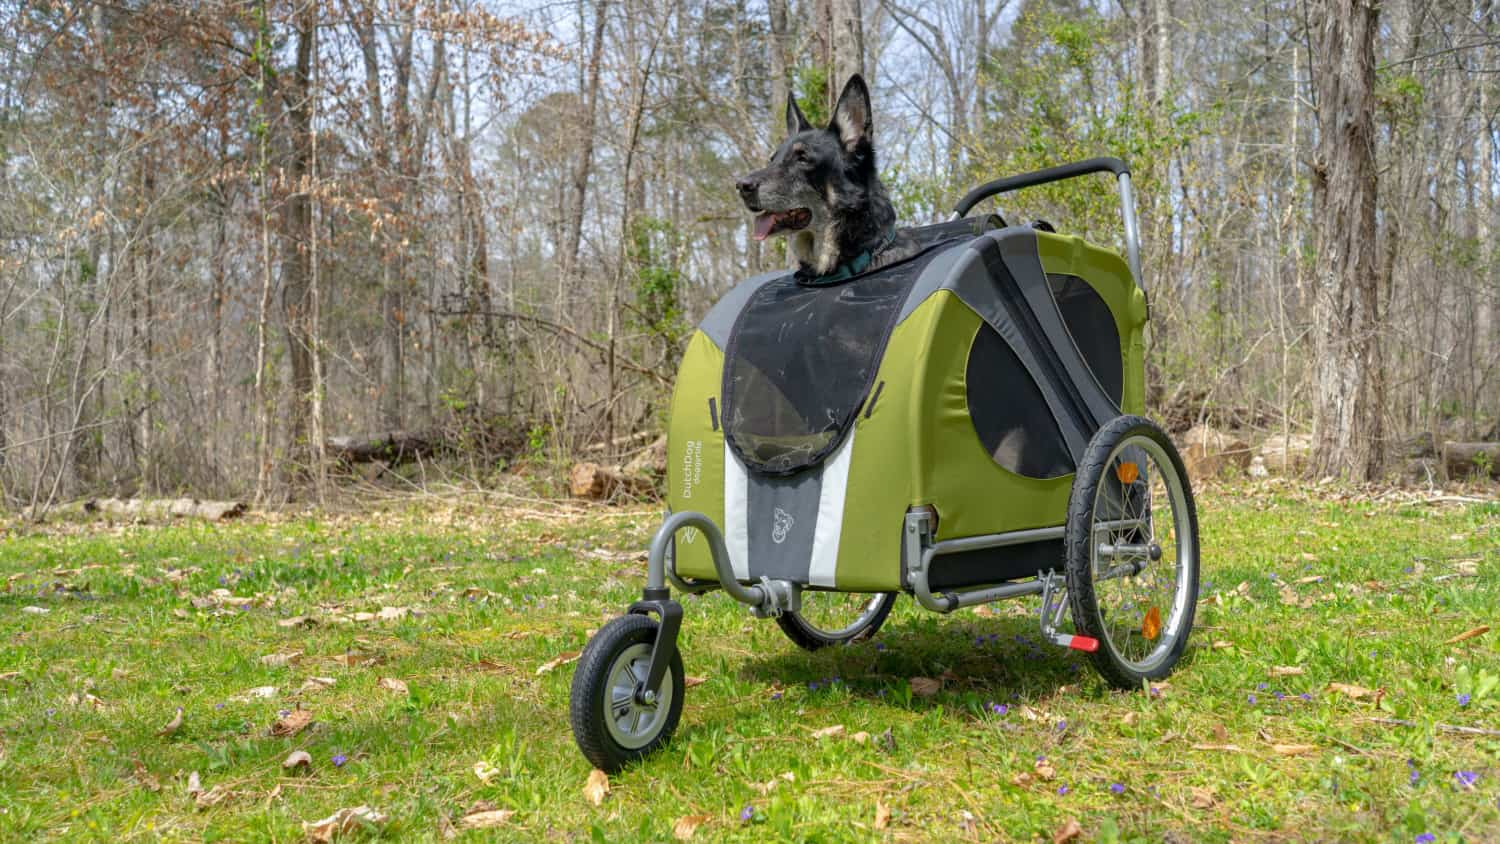 Buster the German Shepherd Dog in a green DoggyRide dog stroller